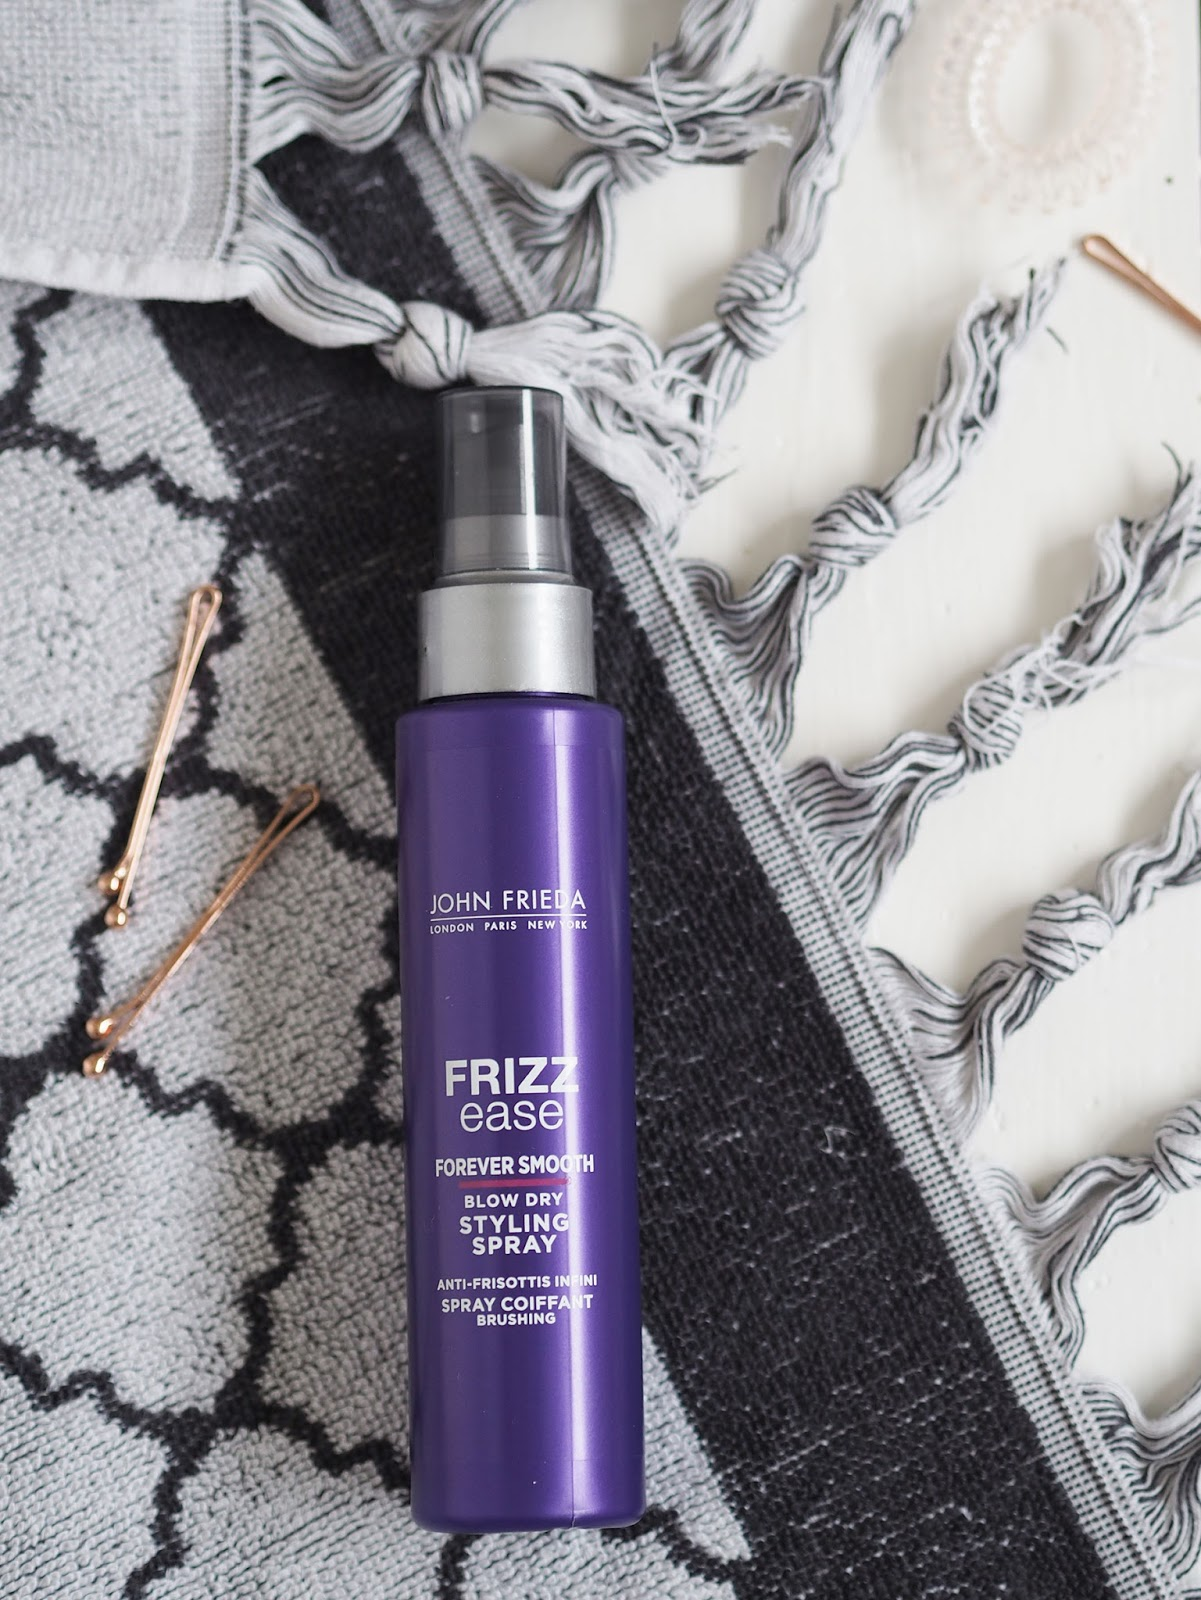 John Frieda Forever Smooth Blow Dry Styling Spray